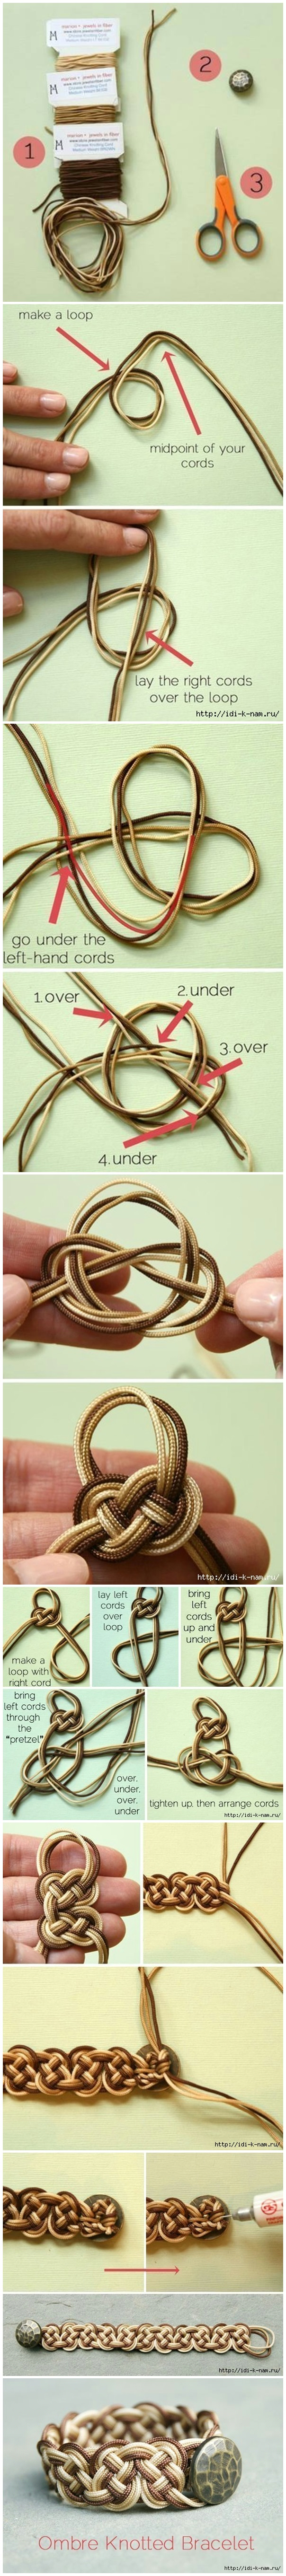 How To Weave Fashion Button Bracelet Step by Step